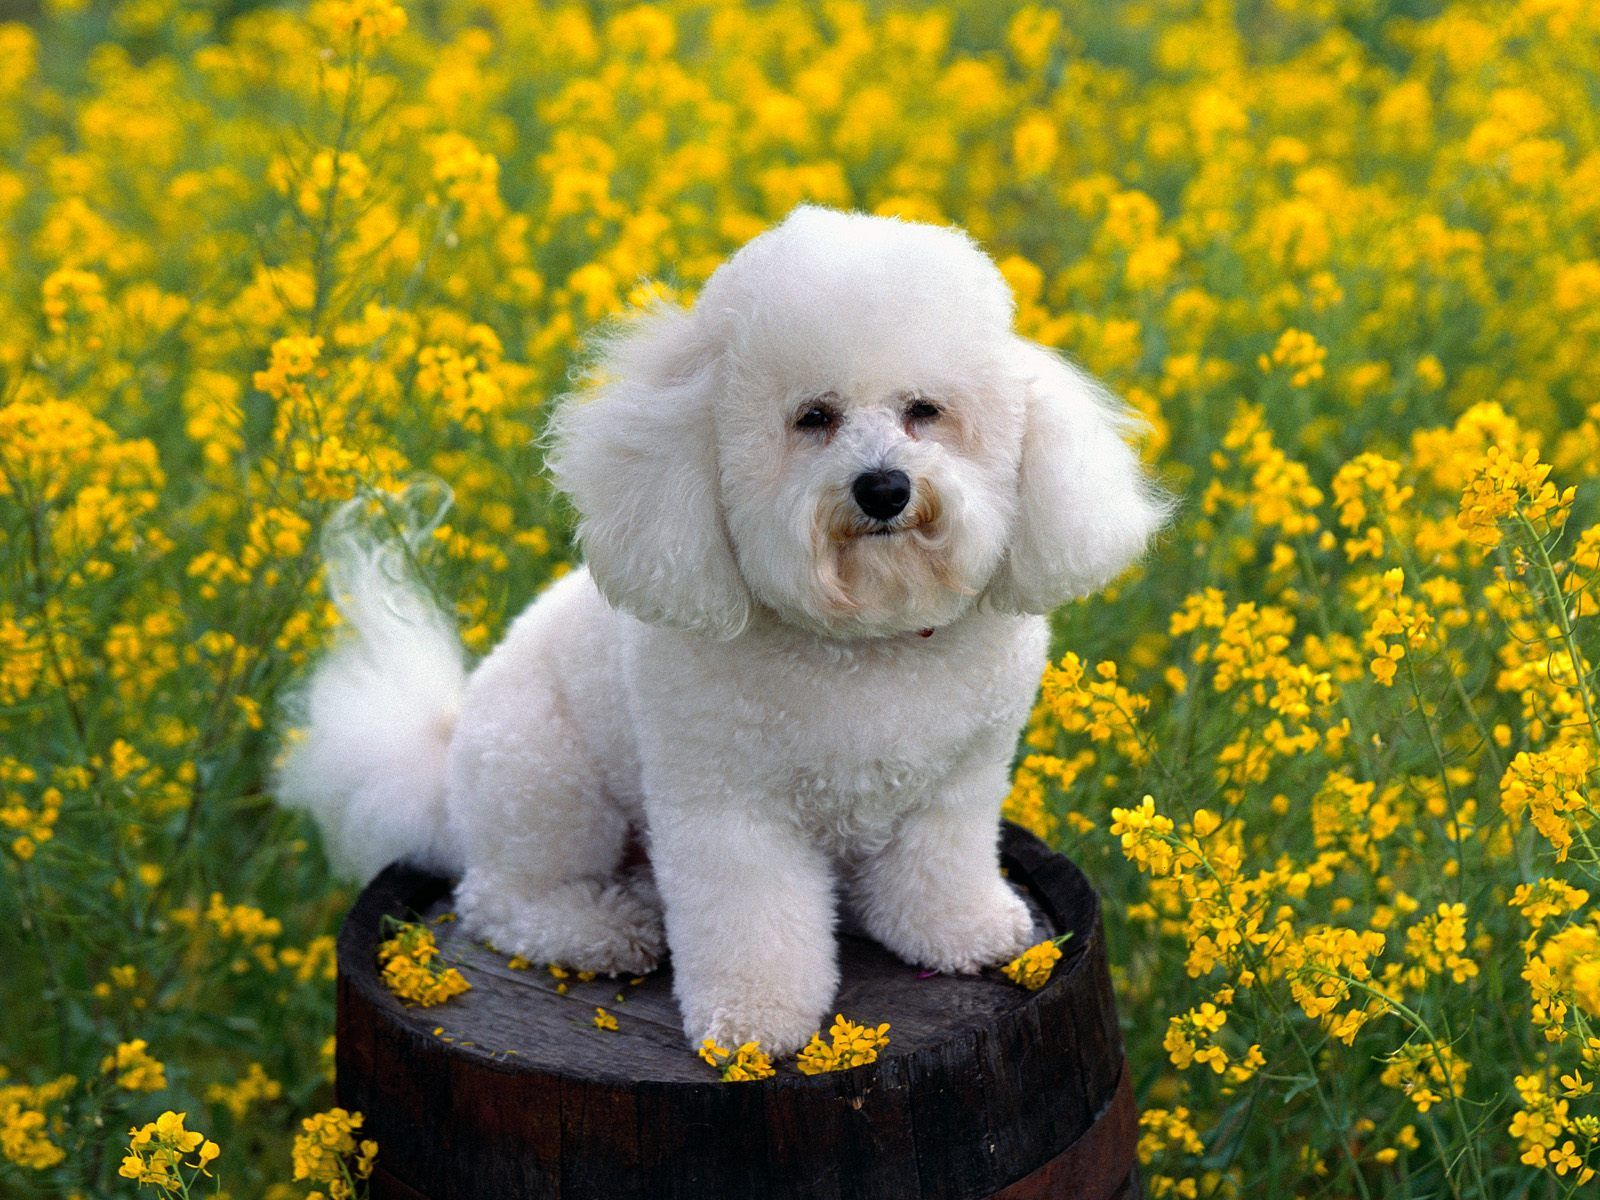 Free Desktop Wallpapers Of Small White Dog In Flowers Free Wallpaper Pet Category Wallpaper Bichon Frise Dogs Bichon Frise Puppy Cute Baby Dogs